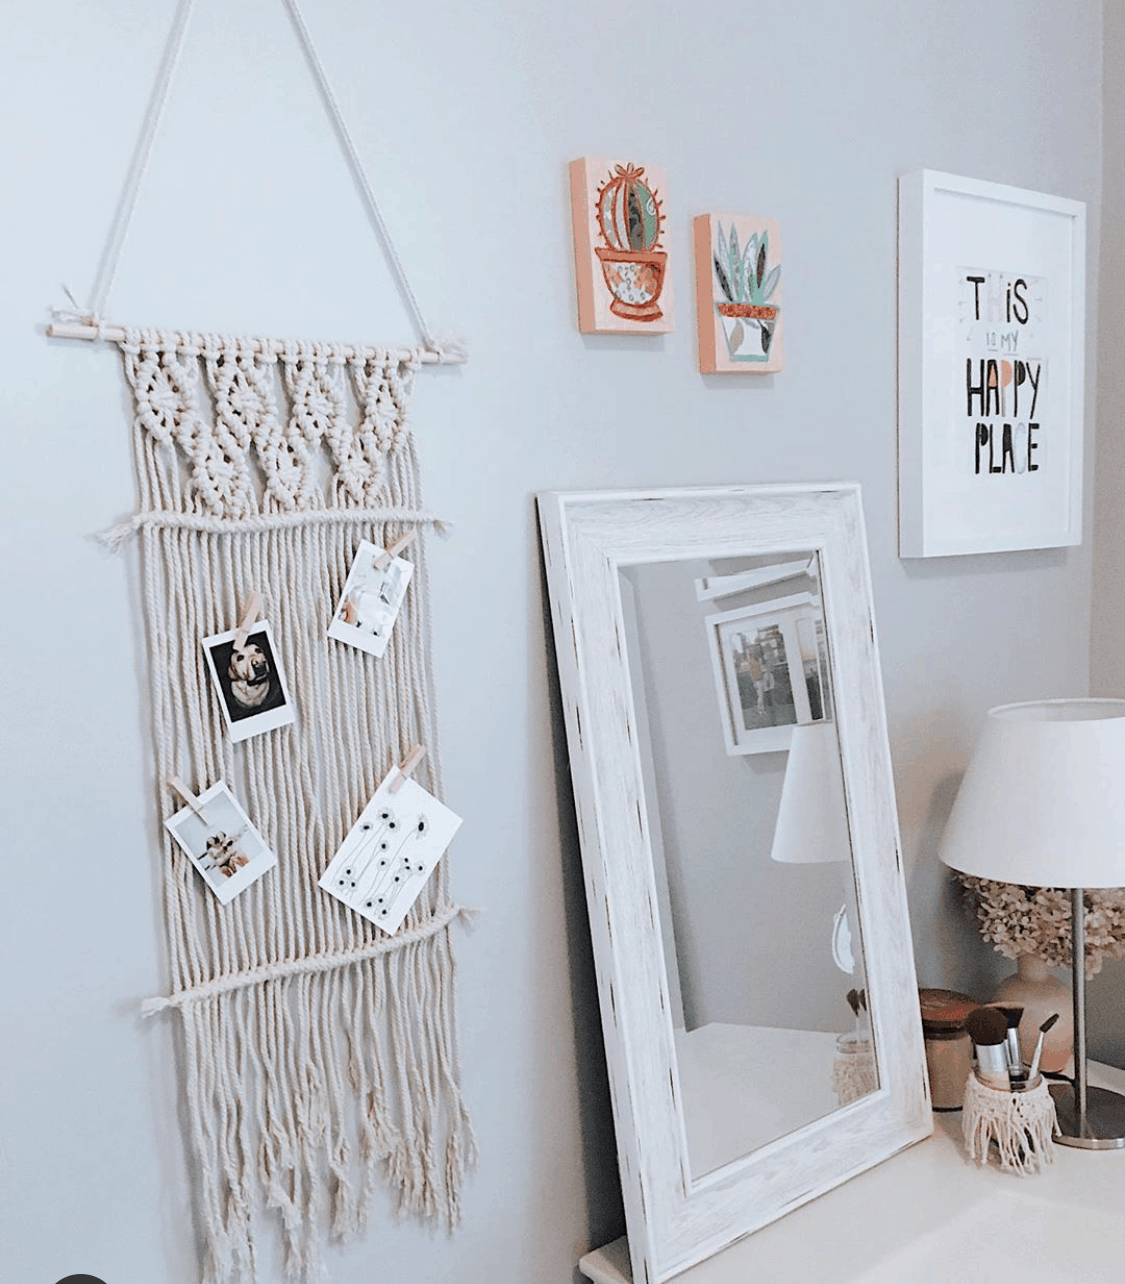 Dorm Room Wall Decor 9 Genius Ways To Decorate Your Dorm Room Walls By Sophia Lee